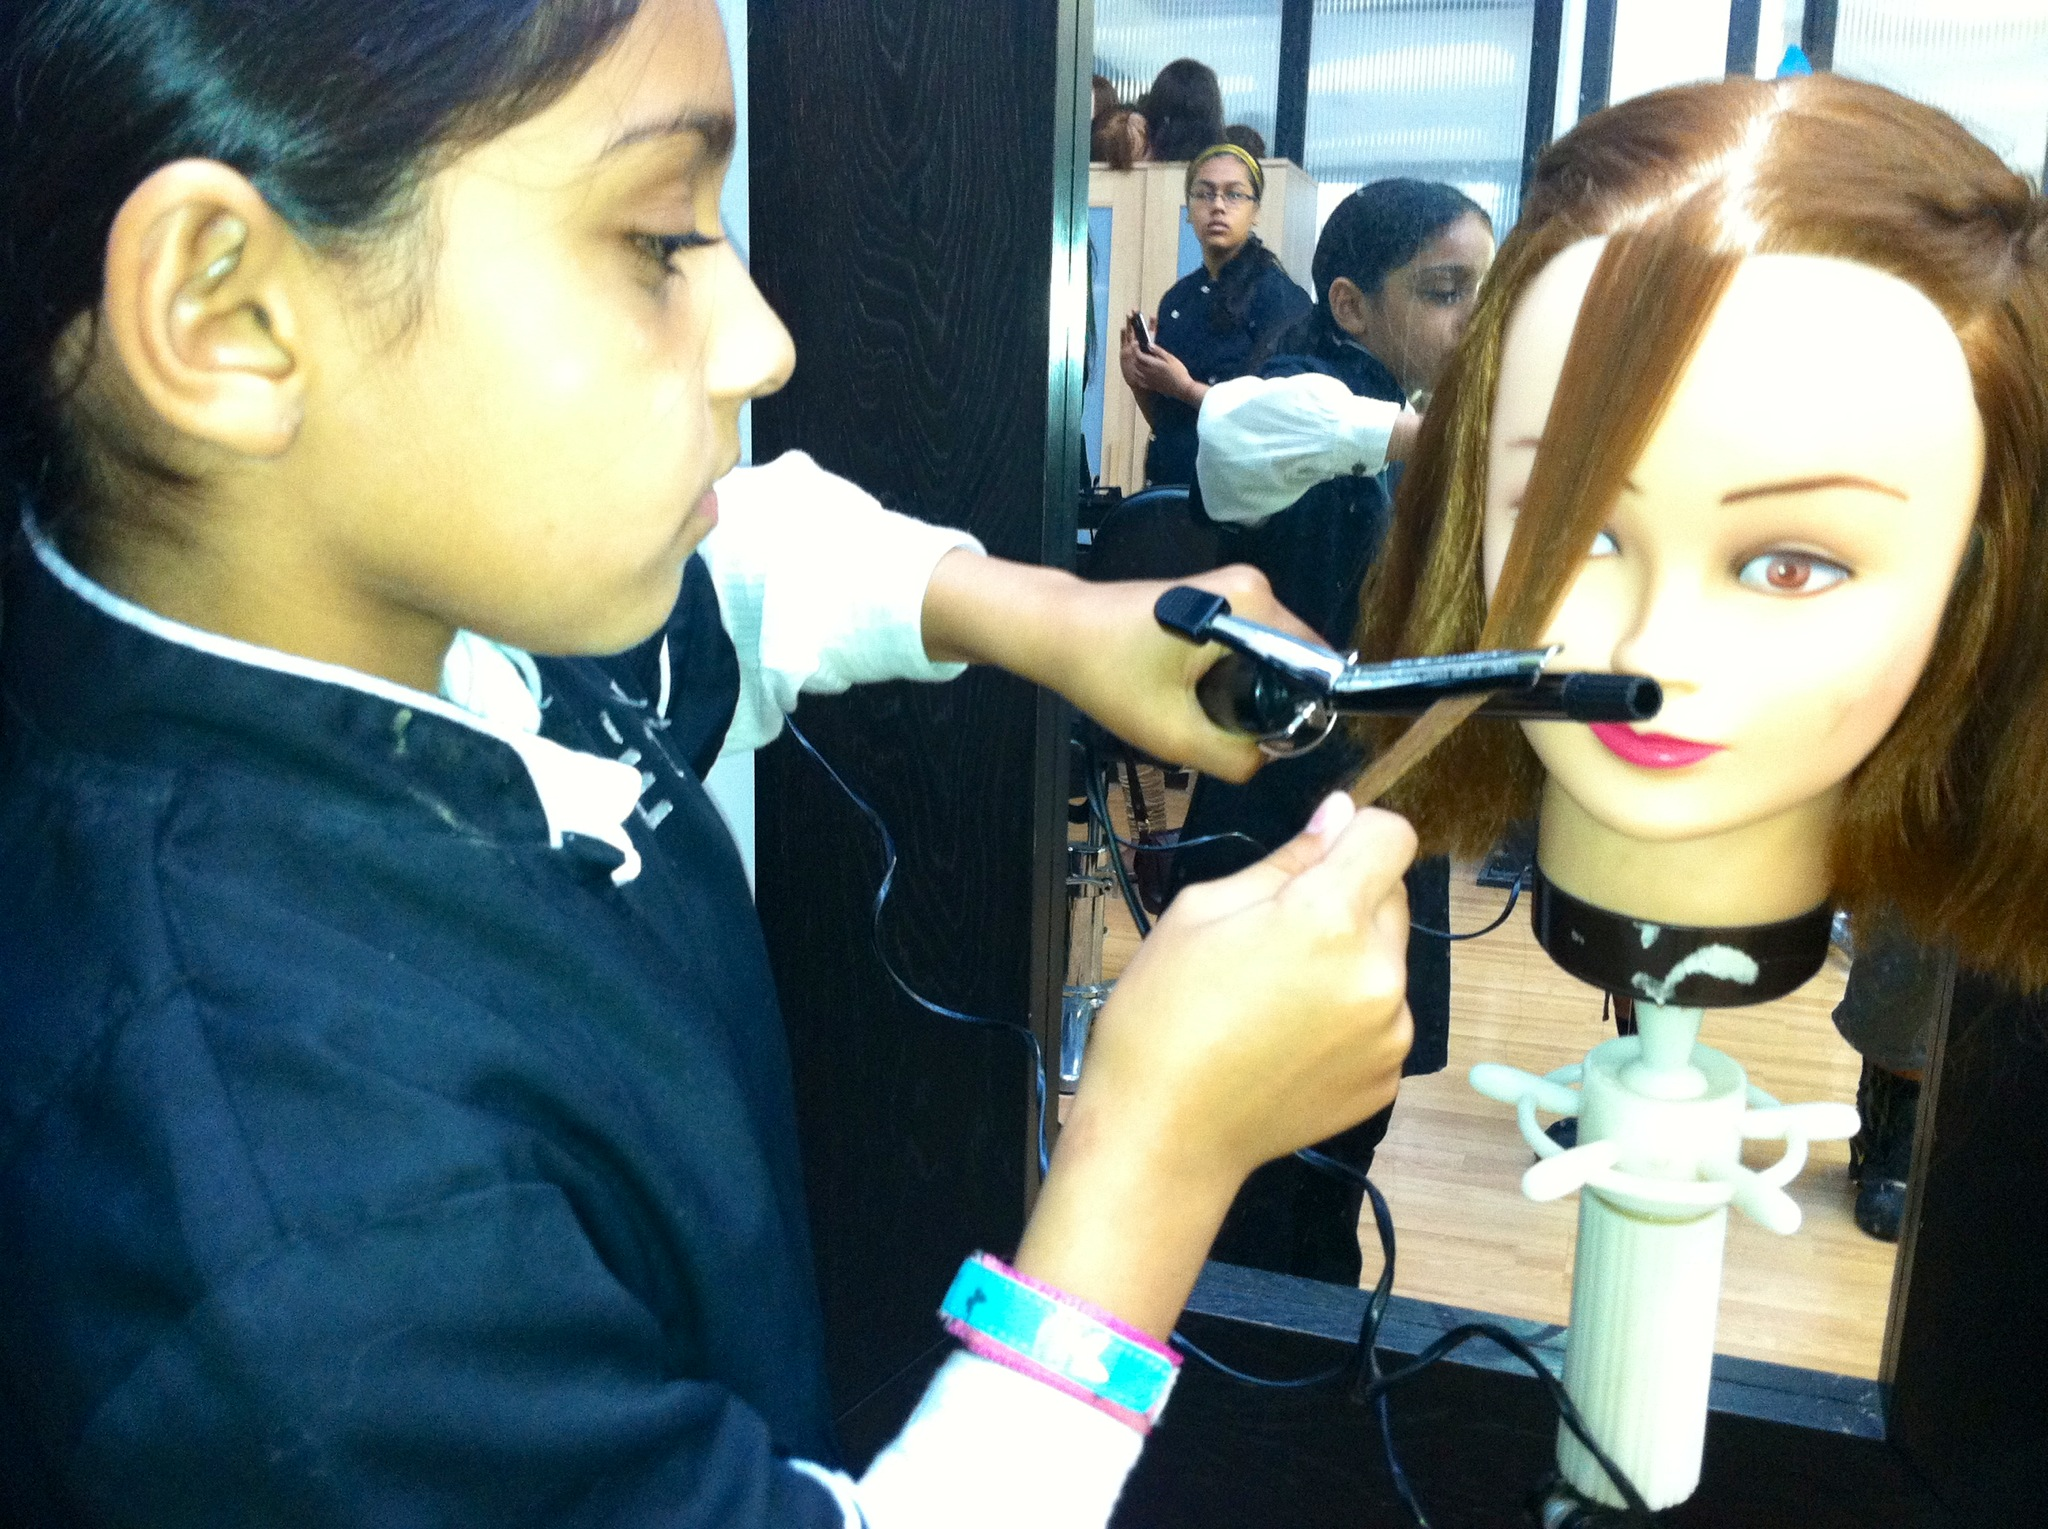 hair beauty courses studio makeup bespoke training e12 london education specific specifications areas around